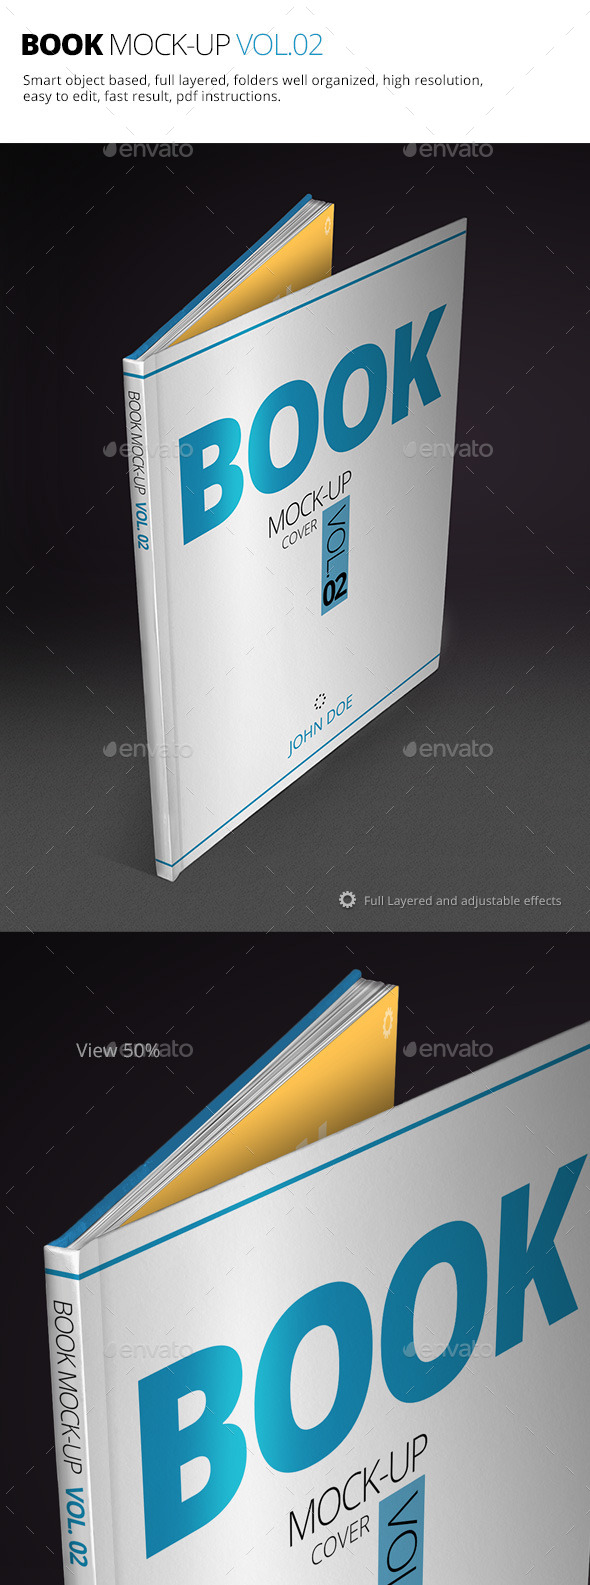 Book Mock-up Vol.02 - Books Print